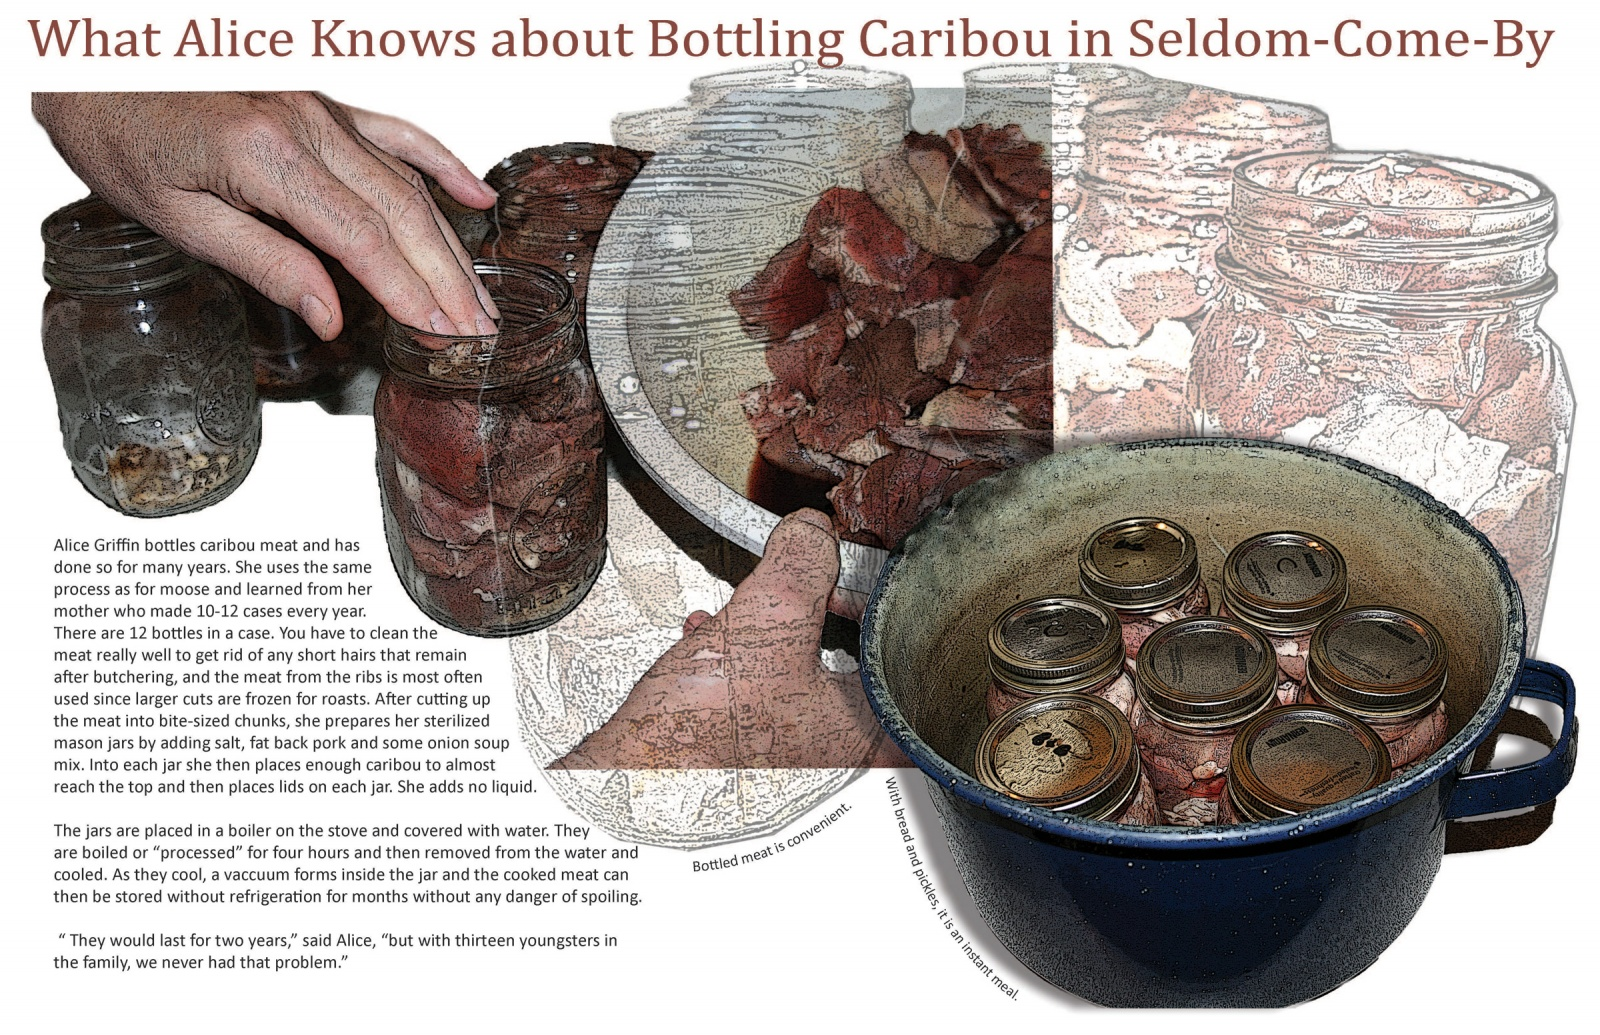 What Alice Knows about Bottling Caribou in Seldom-Come-By